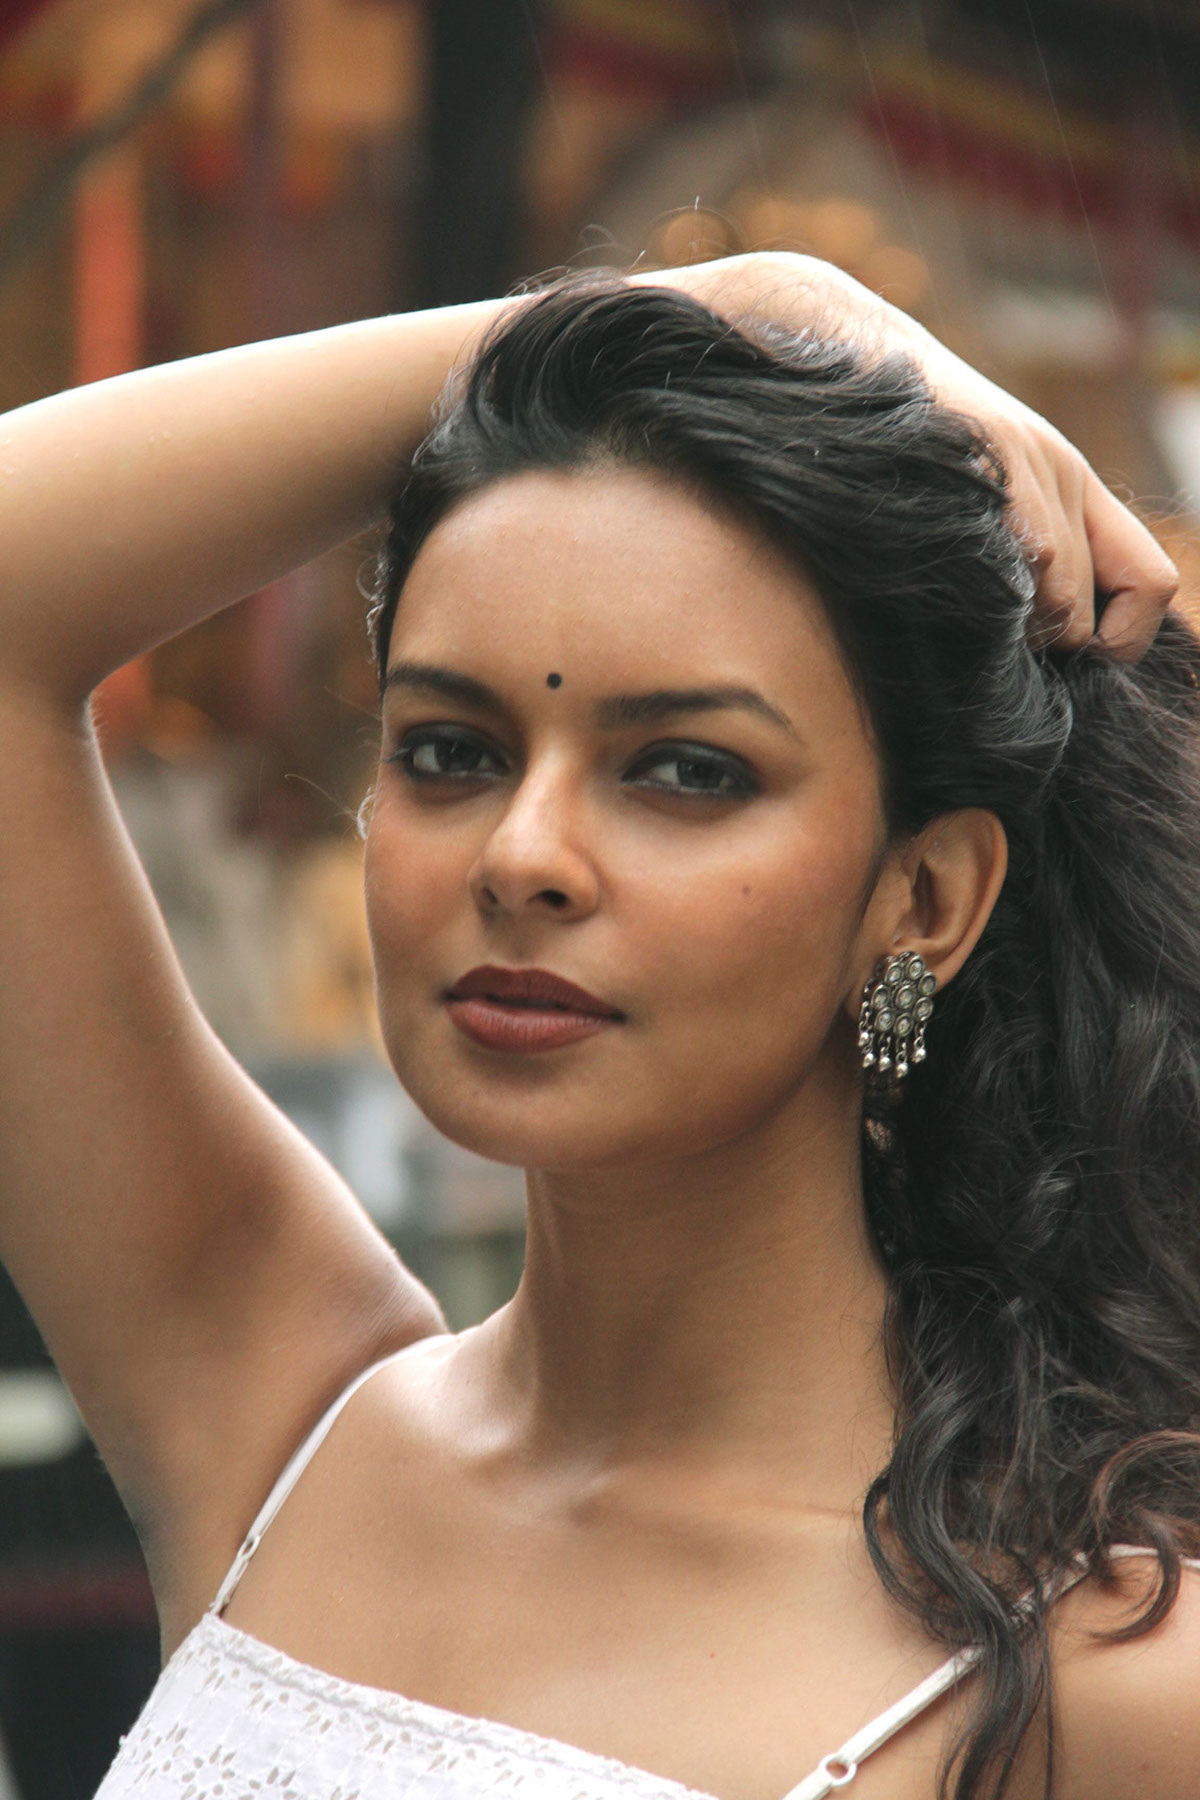 bidita bag feetbidita bag age, bidita bag instagram, bidita bag movies, bidita bag facebook, bidita bag, bidita bag hot, bidita bag kiss, bidita bag bikini, bidita bag feet, bidita bag hot scene, bidita bag sunny leone, bidita bag santabanta, bidita bag pics, bidita bag photos, bidita bag wallpaper, bidita bag navel, bidita bag imdb, bidita bag upcoming movie, bidita bag images, bidita bag icche